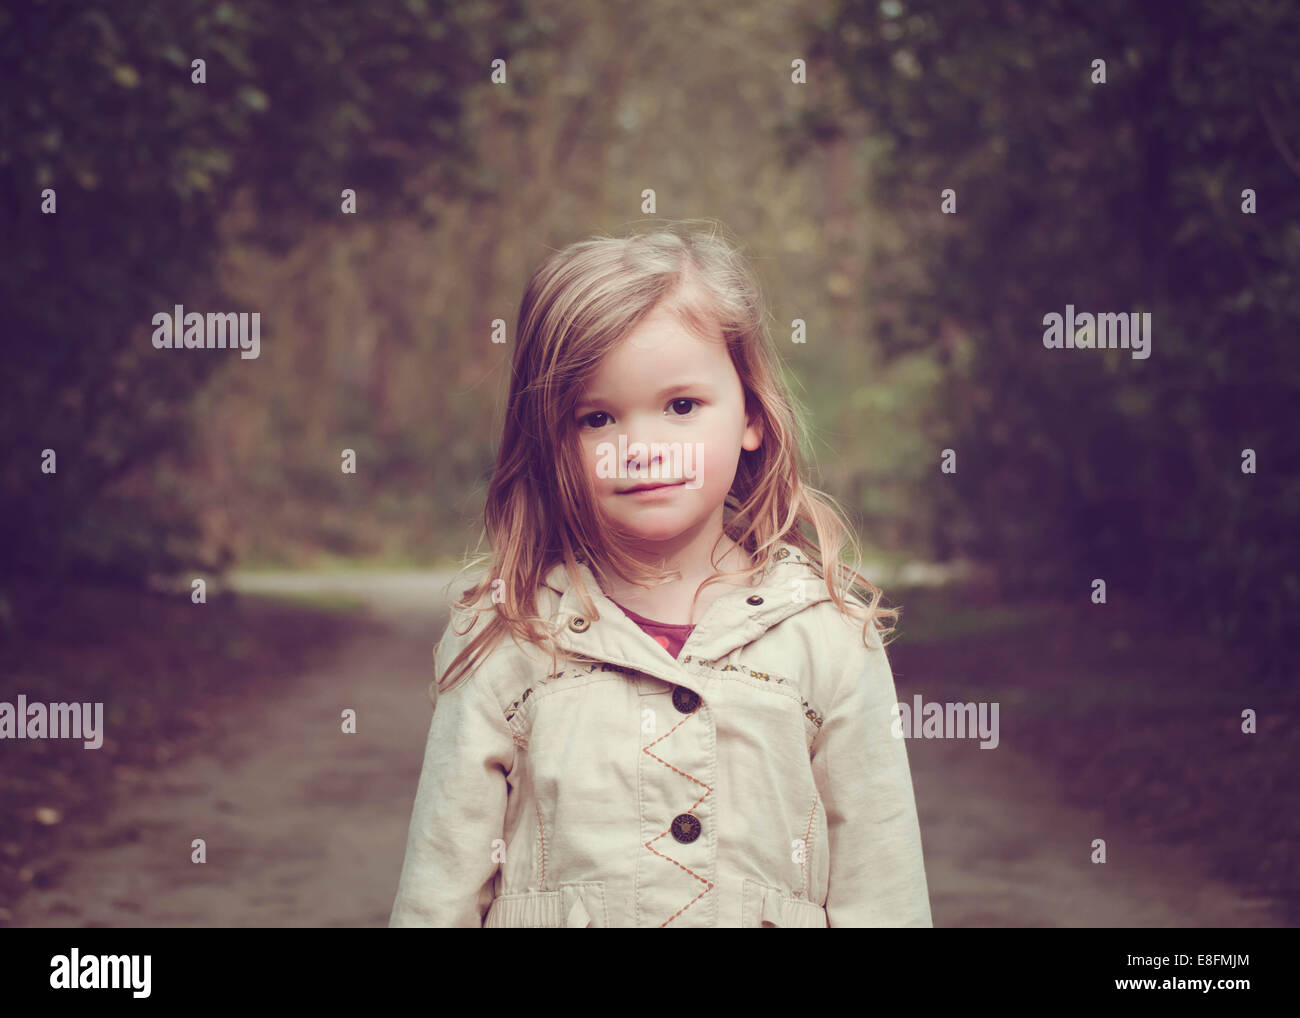 Girl (2-3) standing in park - Stock Image